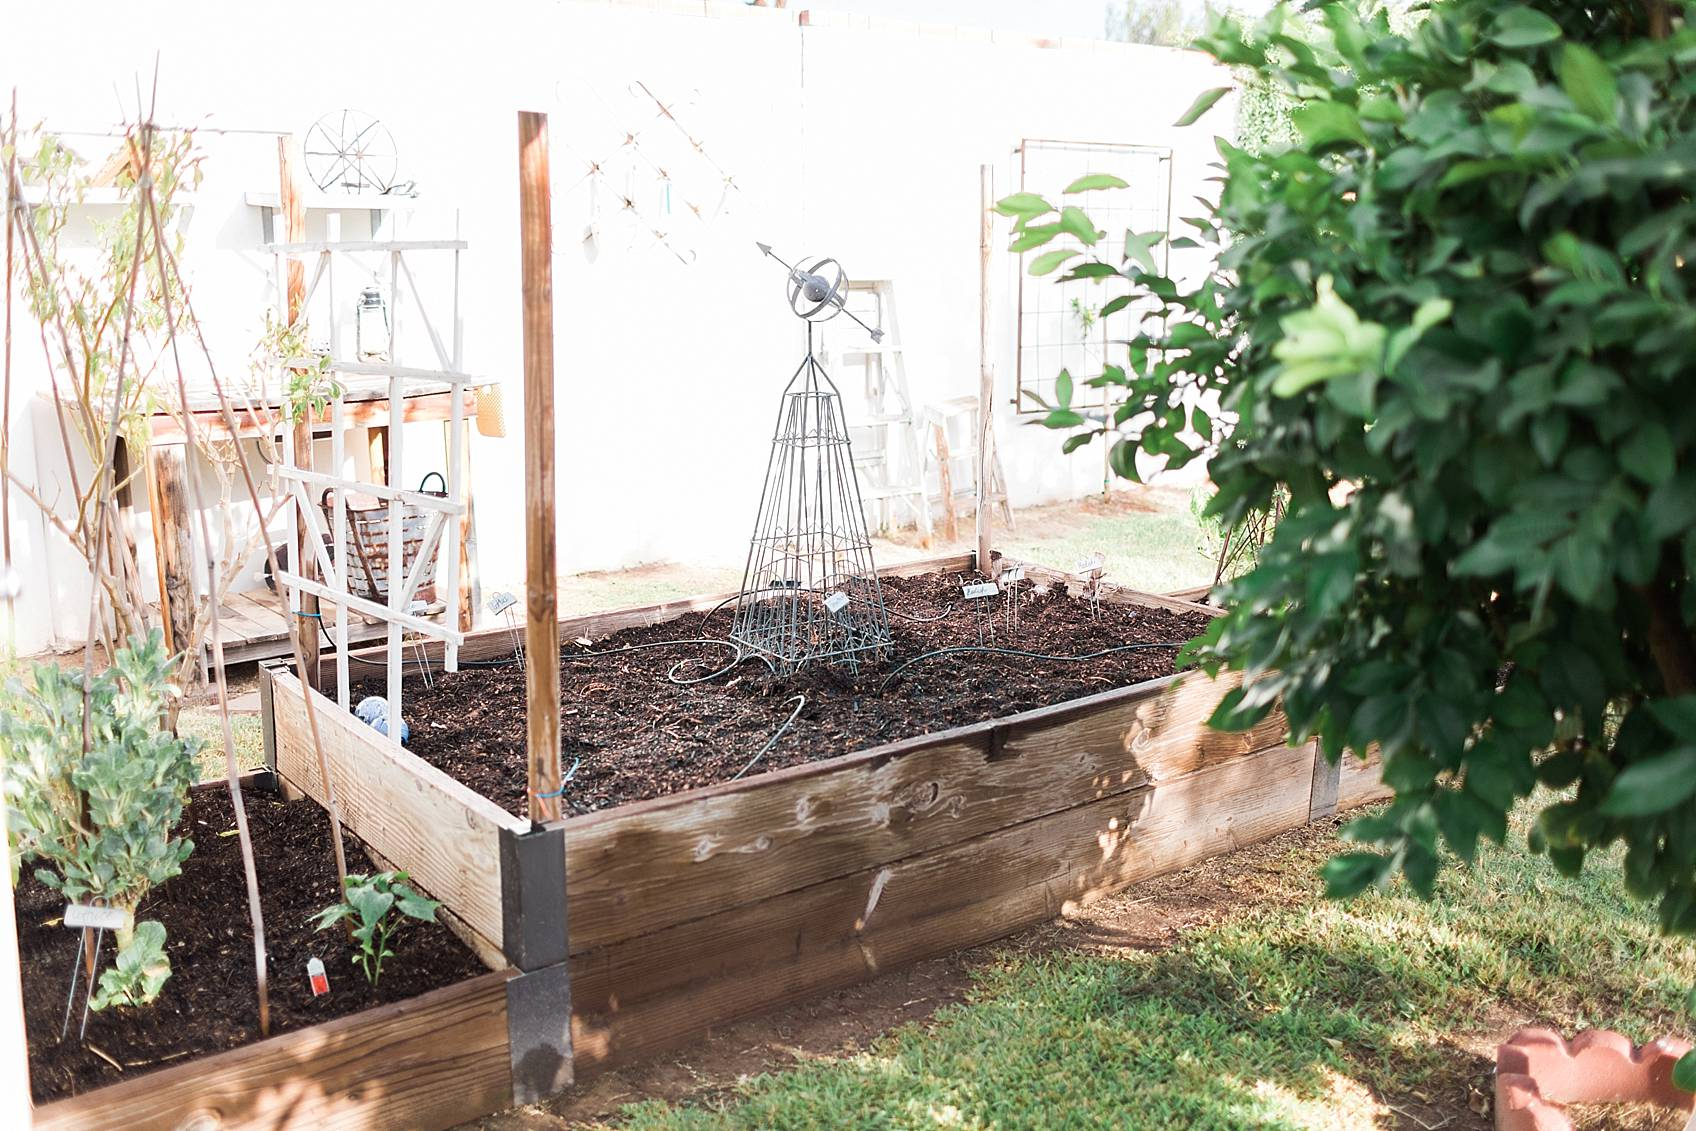 seeded in raised garden beds